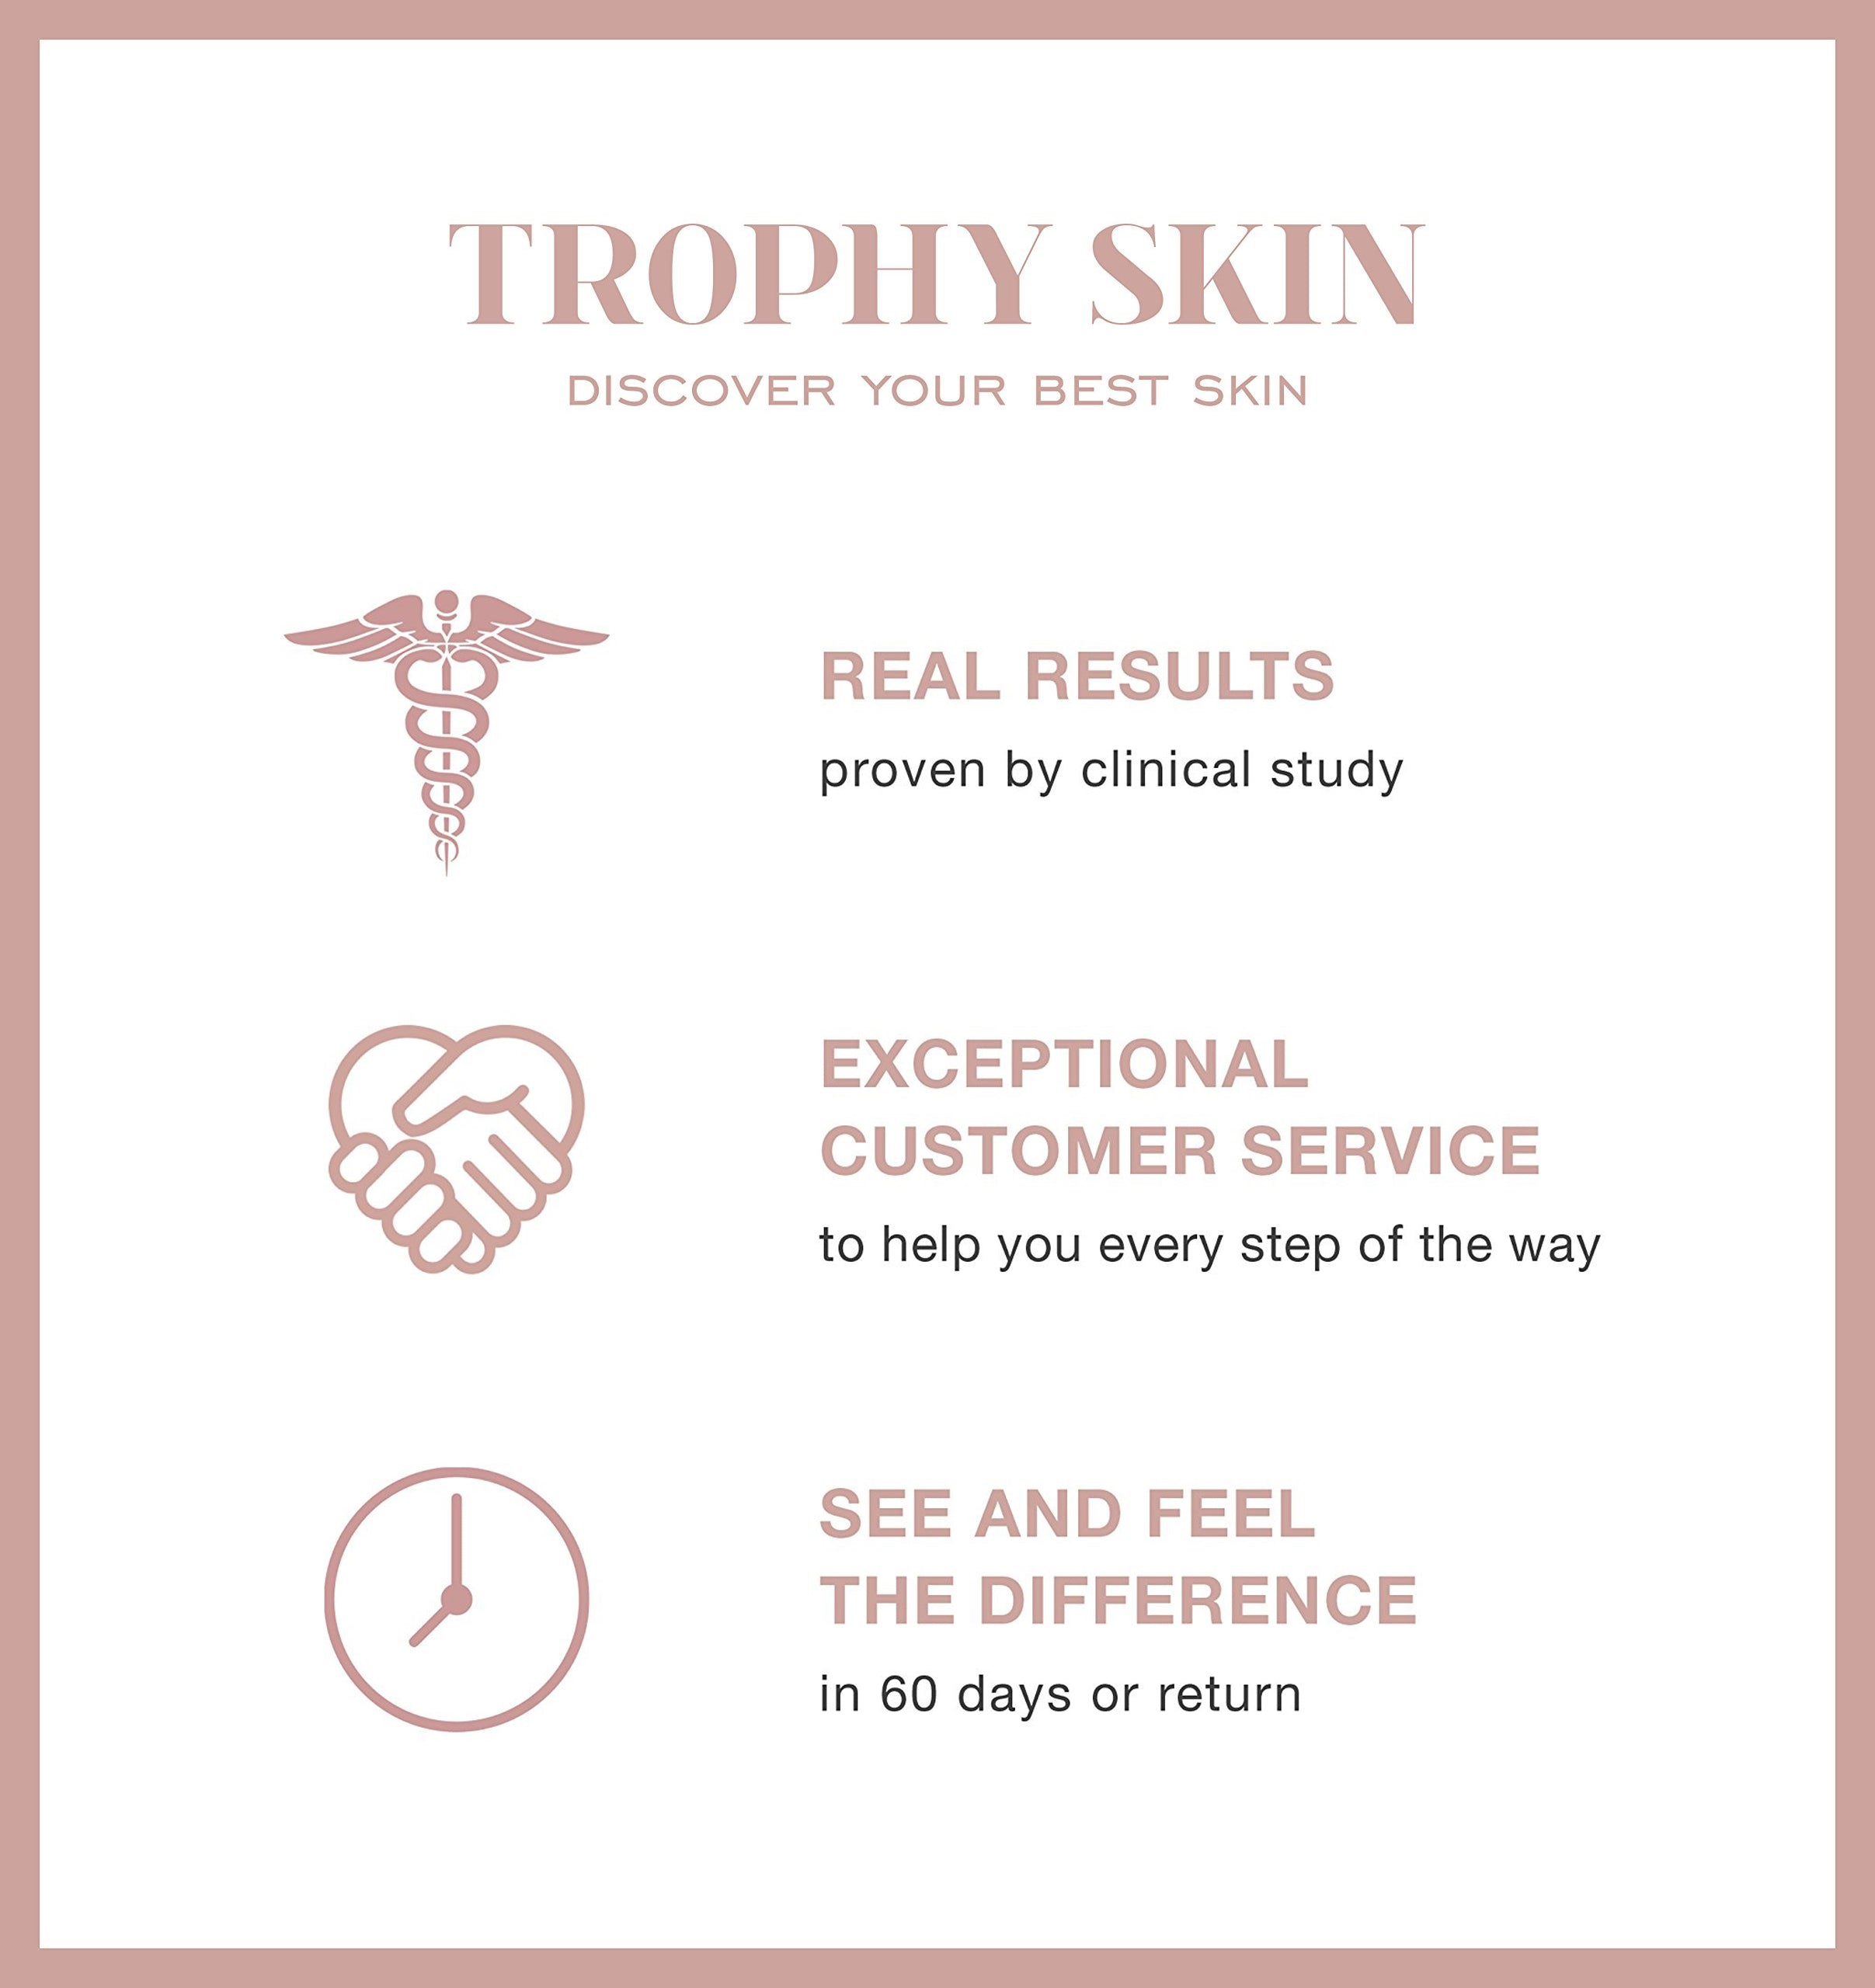 trophy skin brand infographic